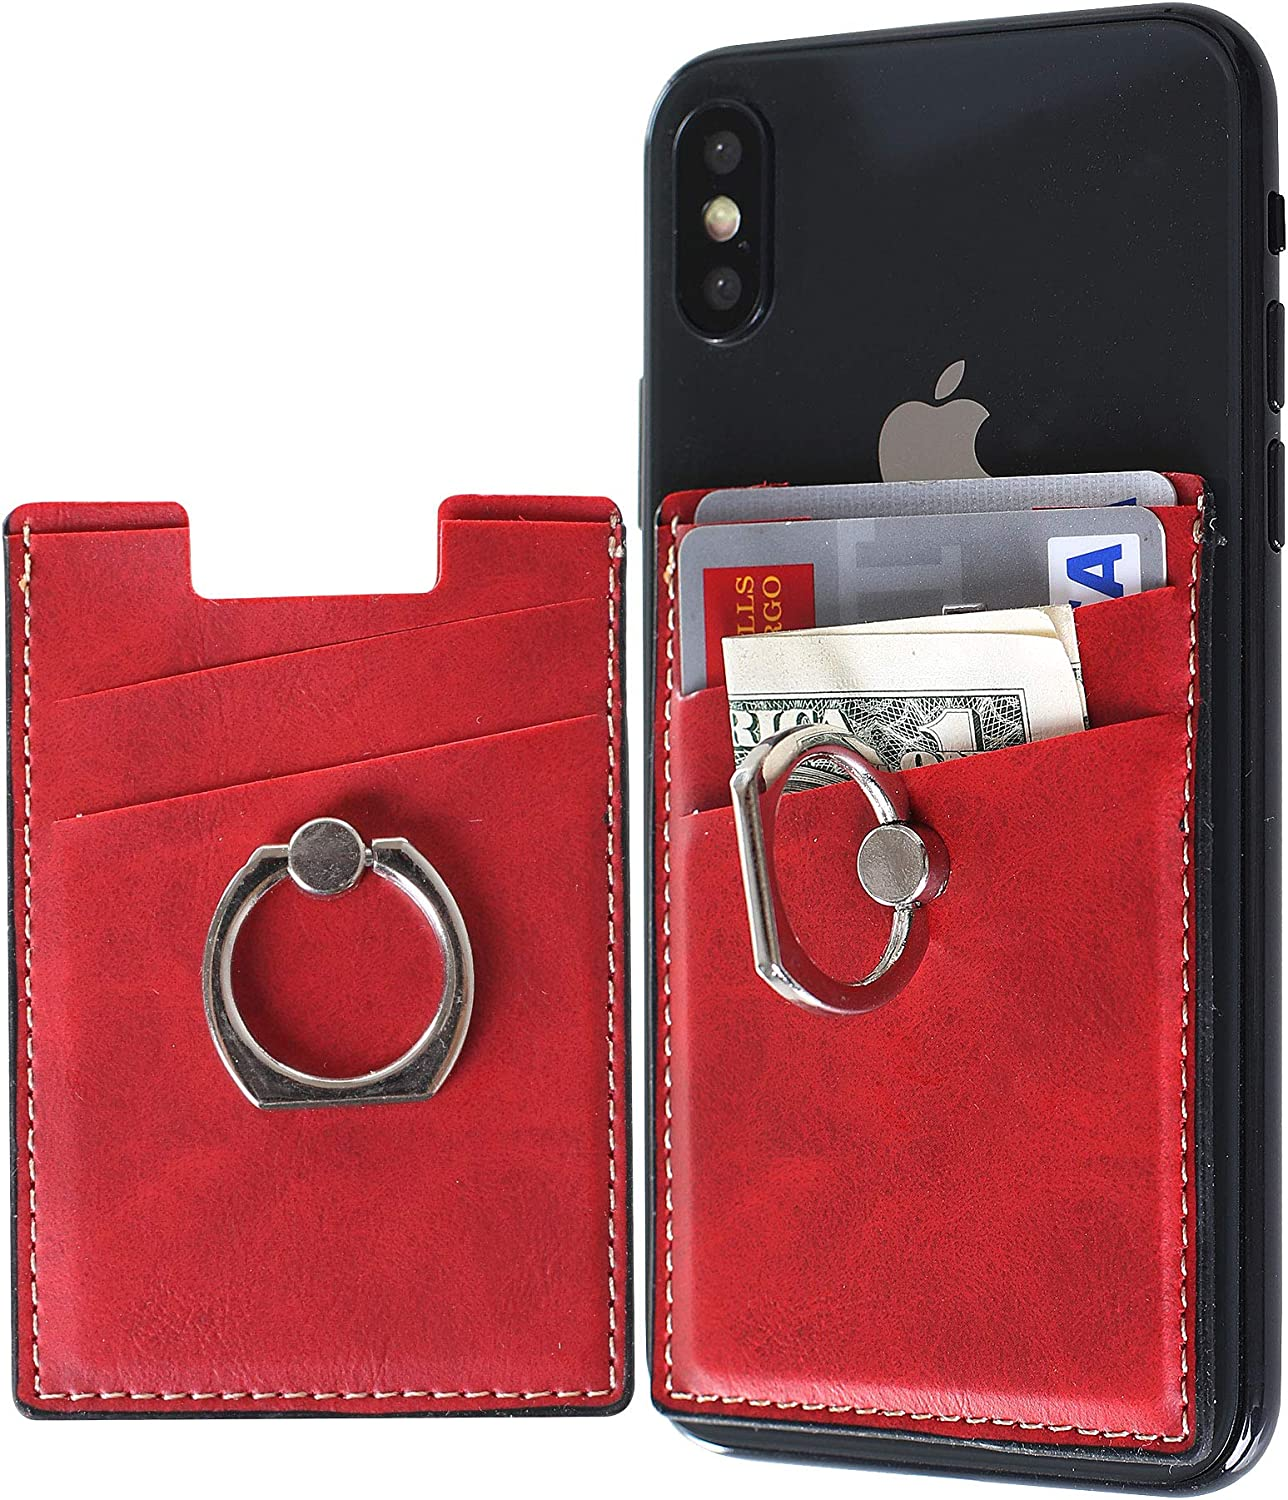 Card Holder for Back of Phone Wallet Stick on with Ring Stand, Adhesive Wallet Sticker Credit Card Holders Car Mount Magnetic Holder for iPhone and Cellphones (Red)